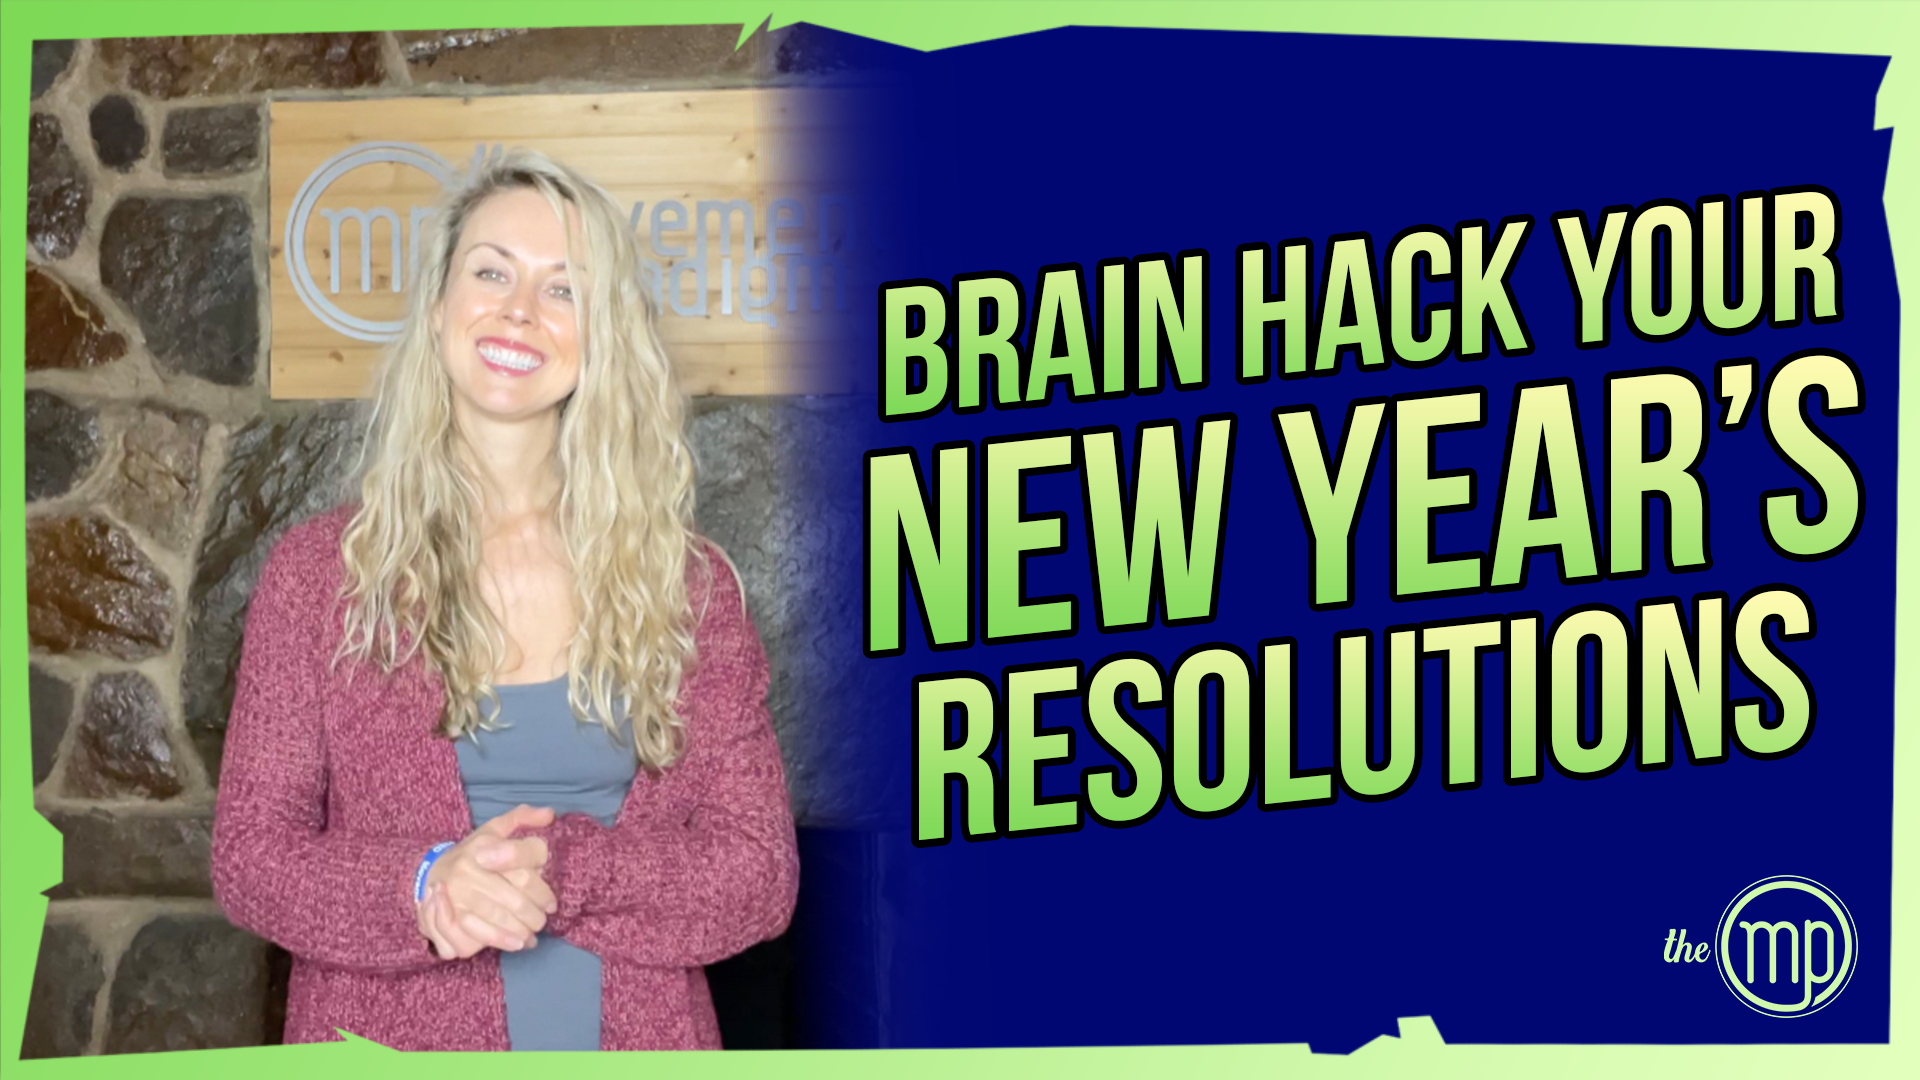 HOW TO HACK YOUR BRAIN FOR NEW YEARS RESOLUTION SUCCESS